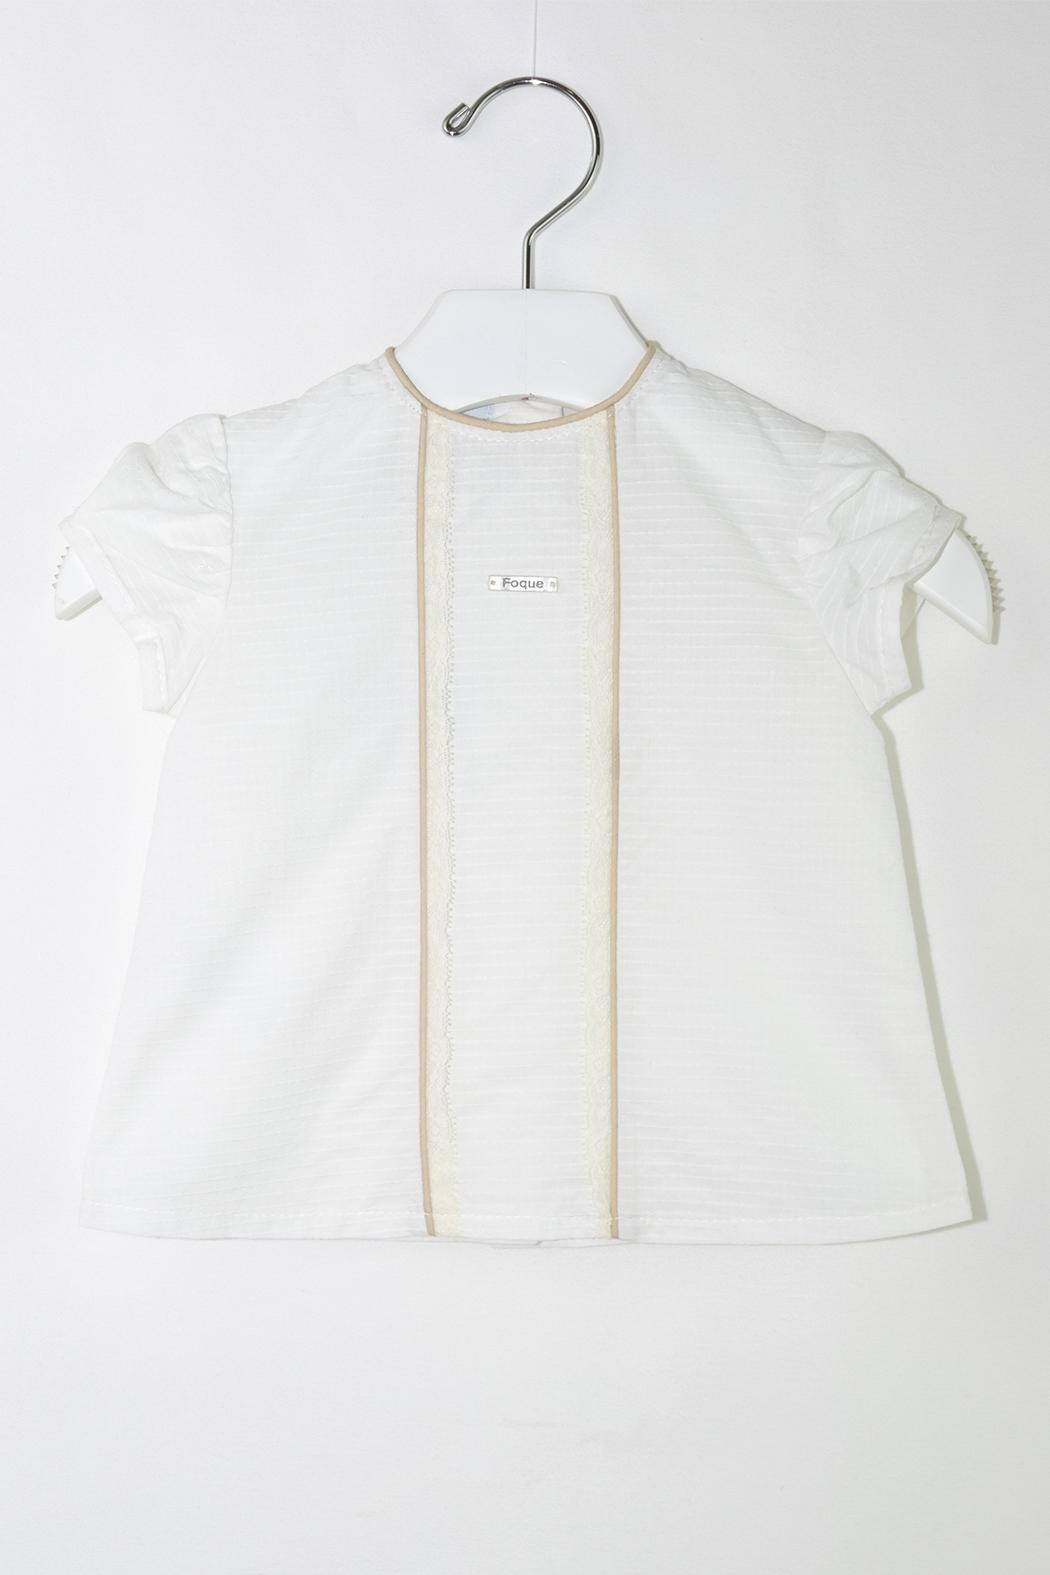 Foque White & Beige Baptism - Side Cropped Image